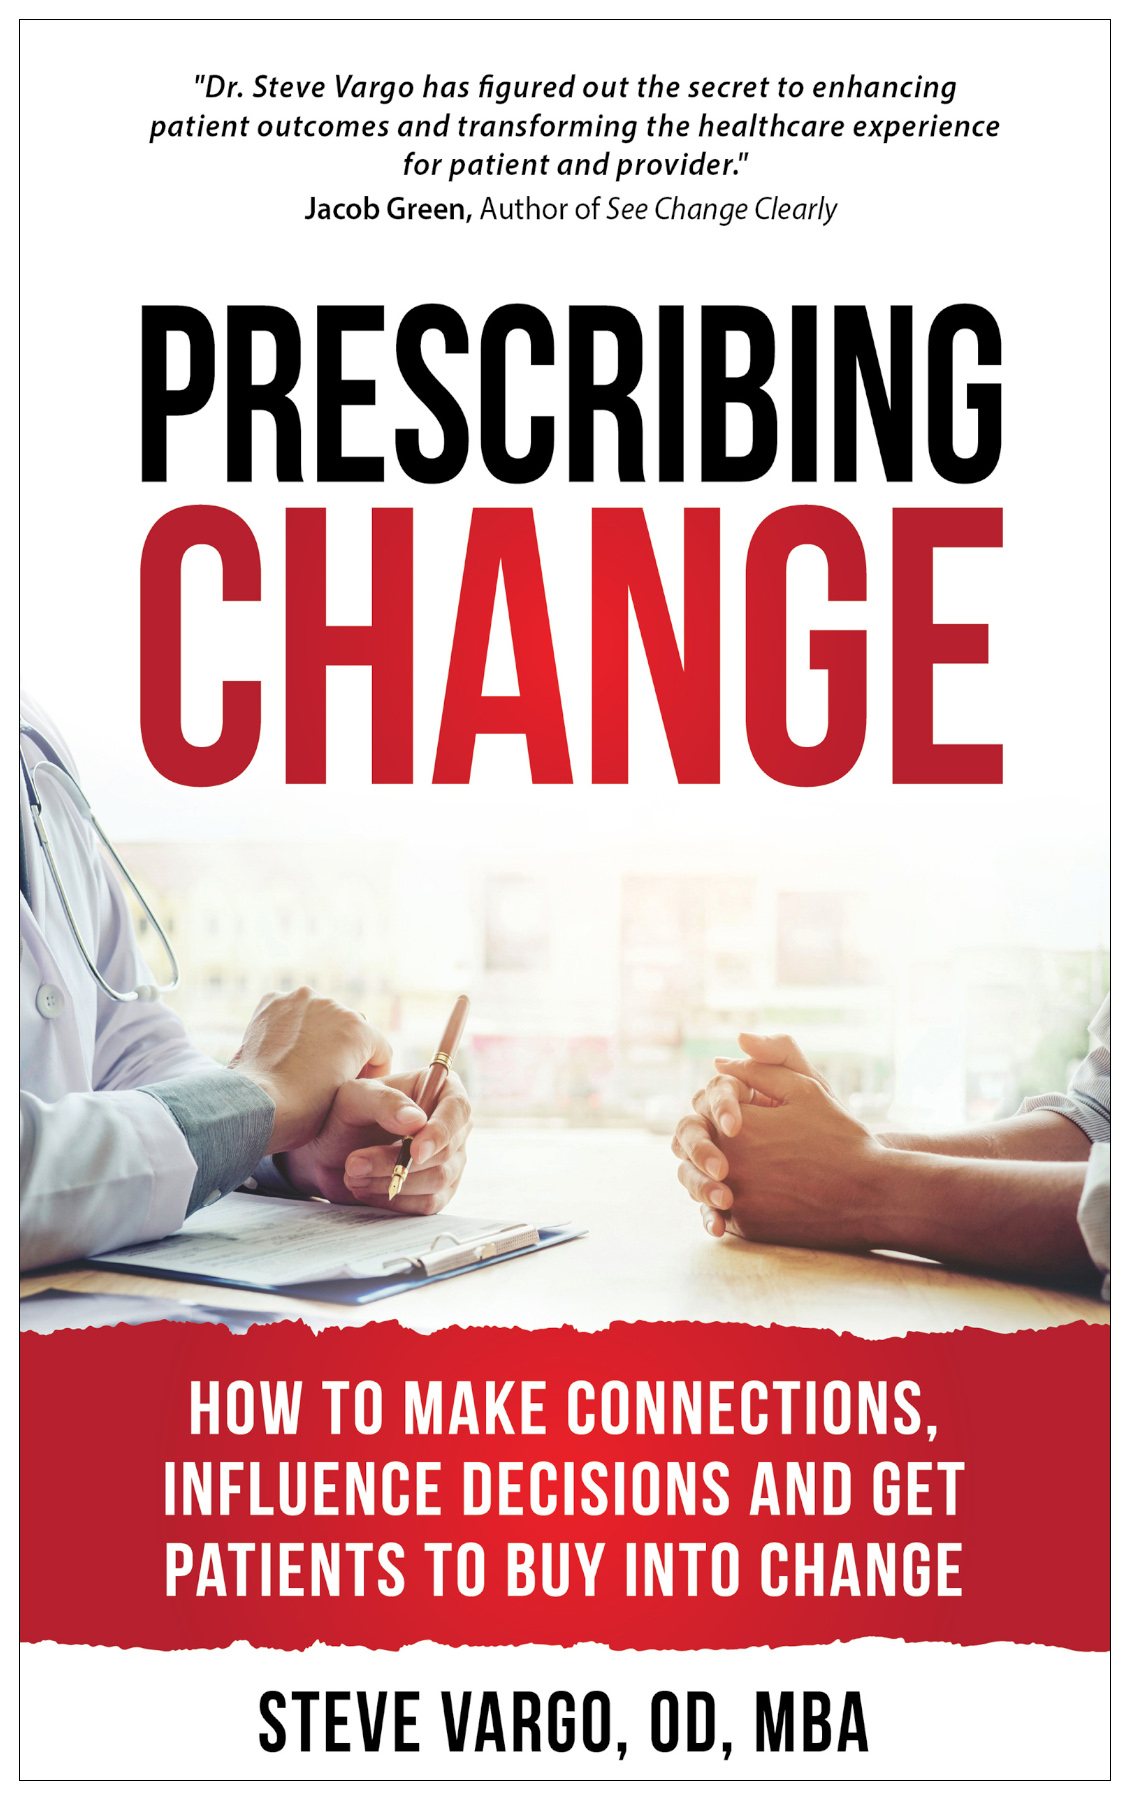 Prescribing Change, How To Make Connections, Influence Decisions And Get Patients To Buy Into Change